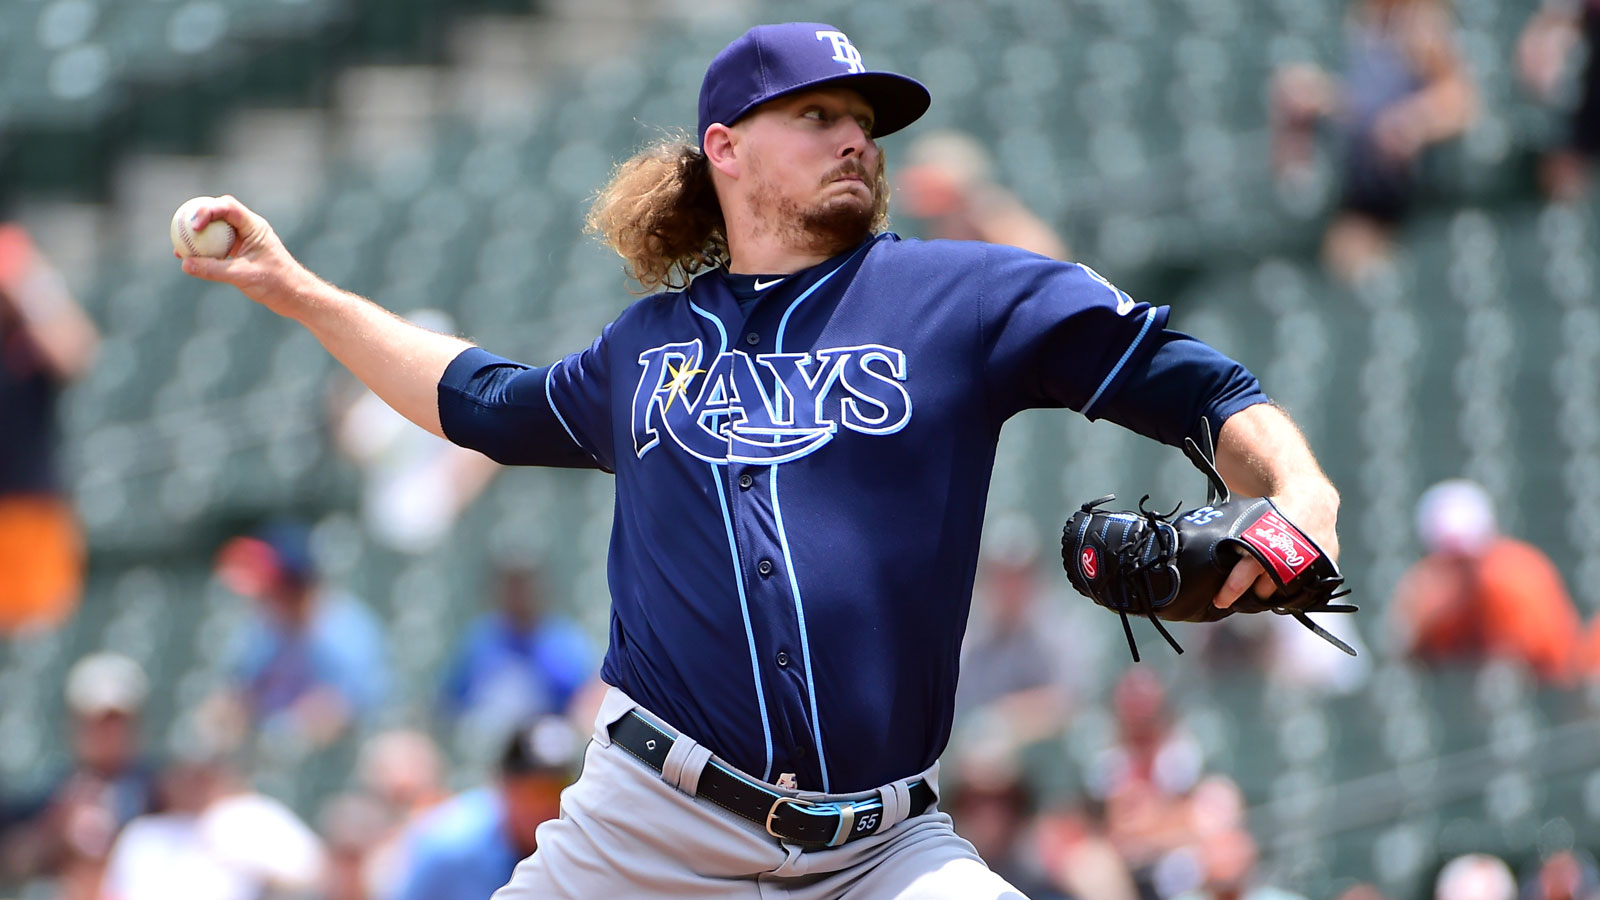 MLB Trade Deadline: Rays add pitching depth, complete 4-player trade with Marlins